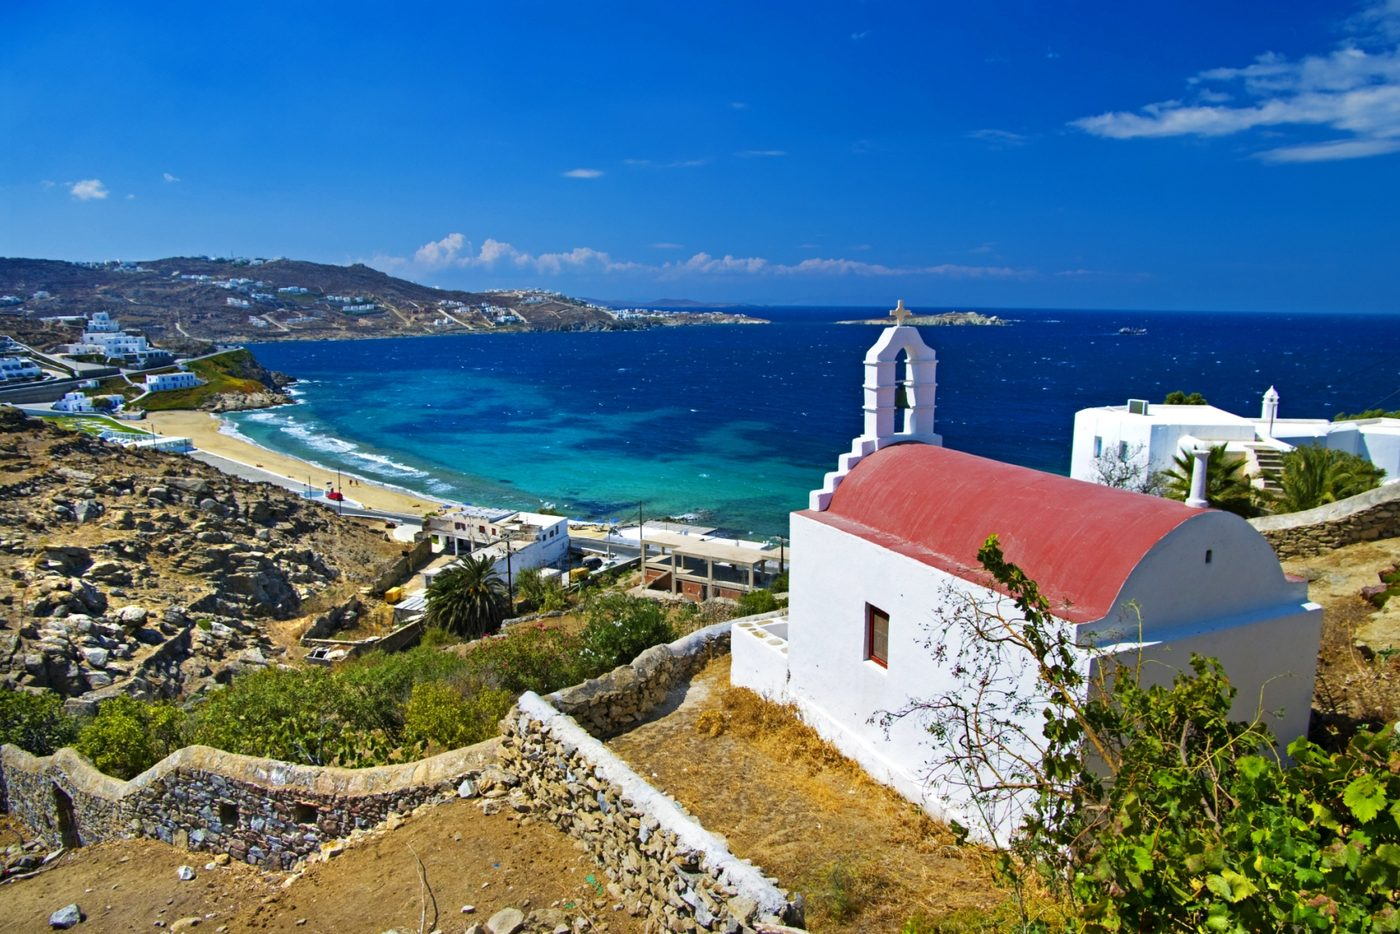 Photo Tour of Cyclades Islands 2